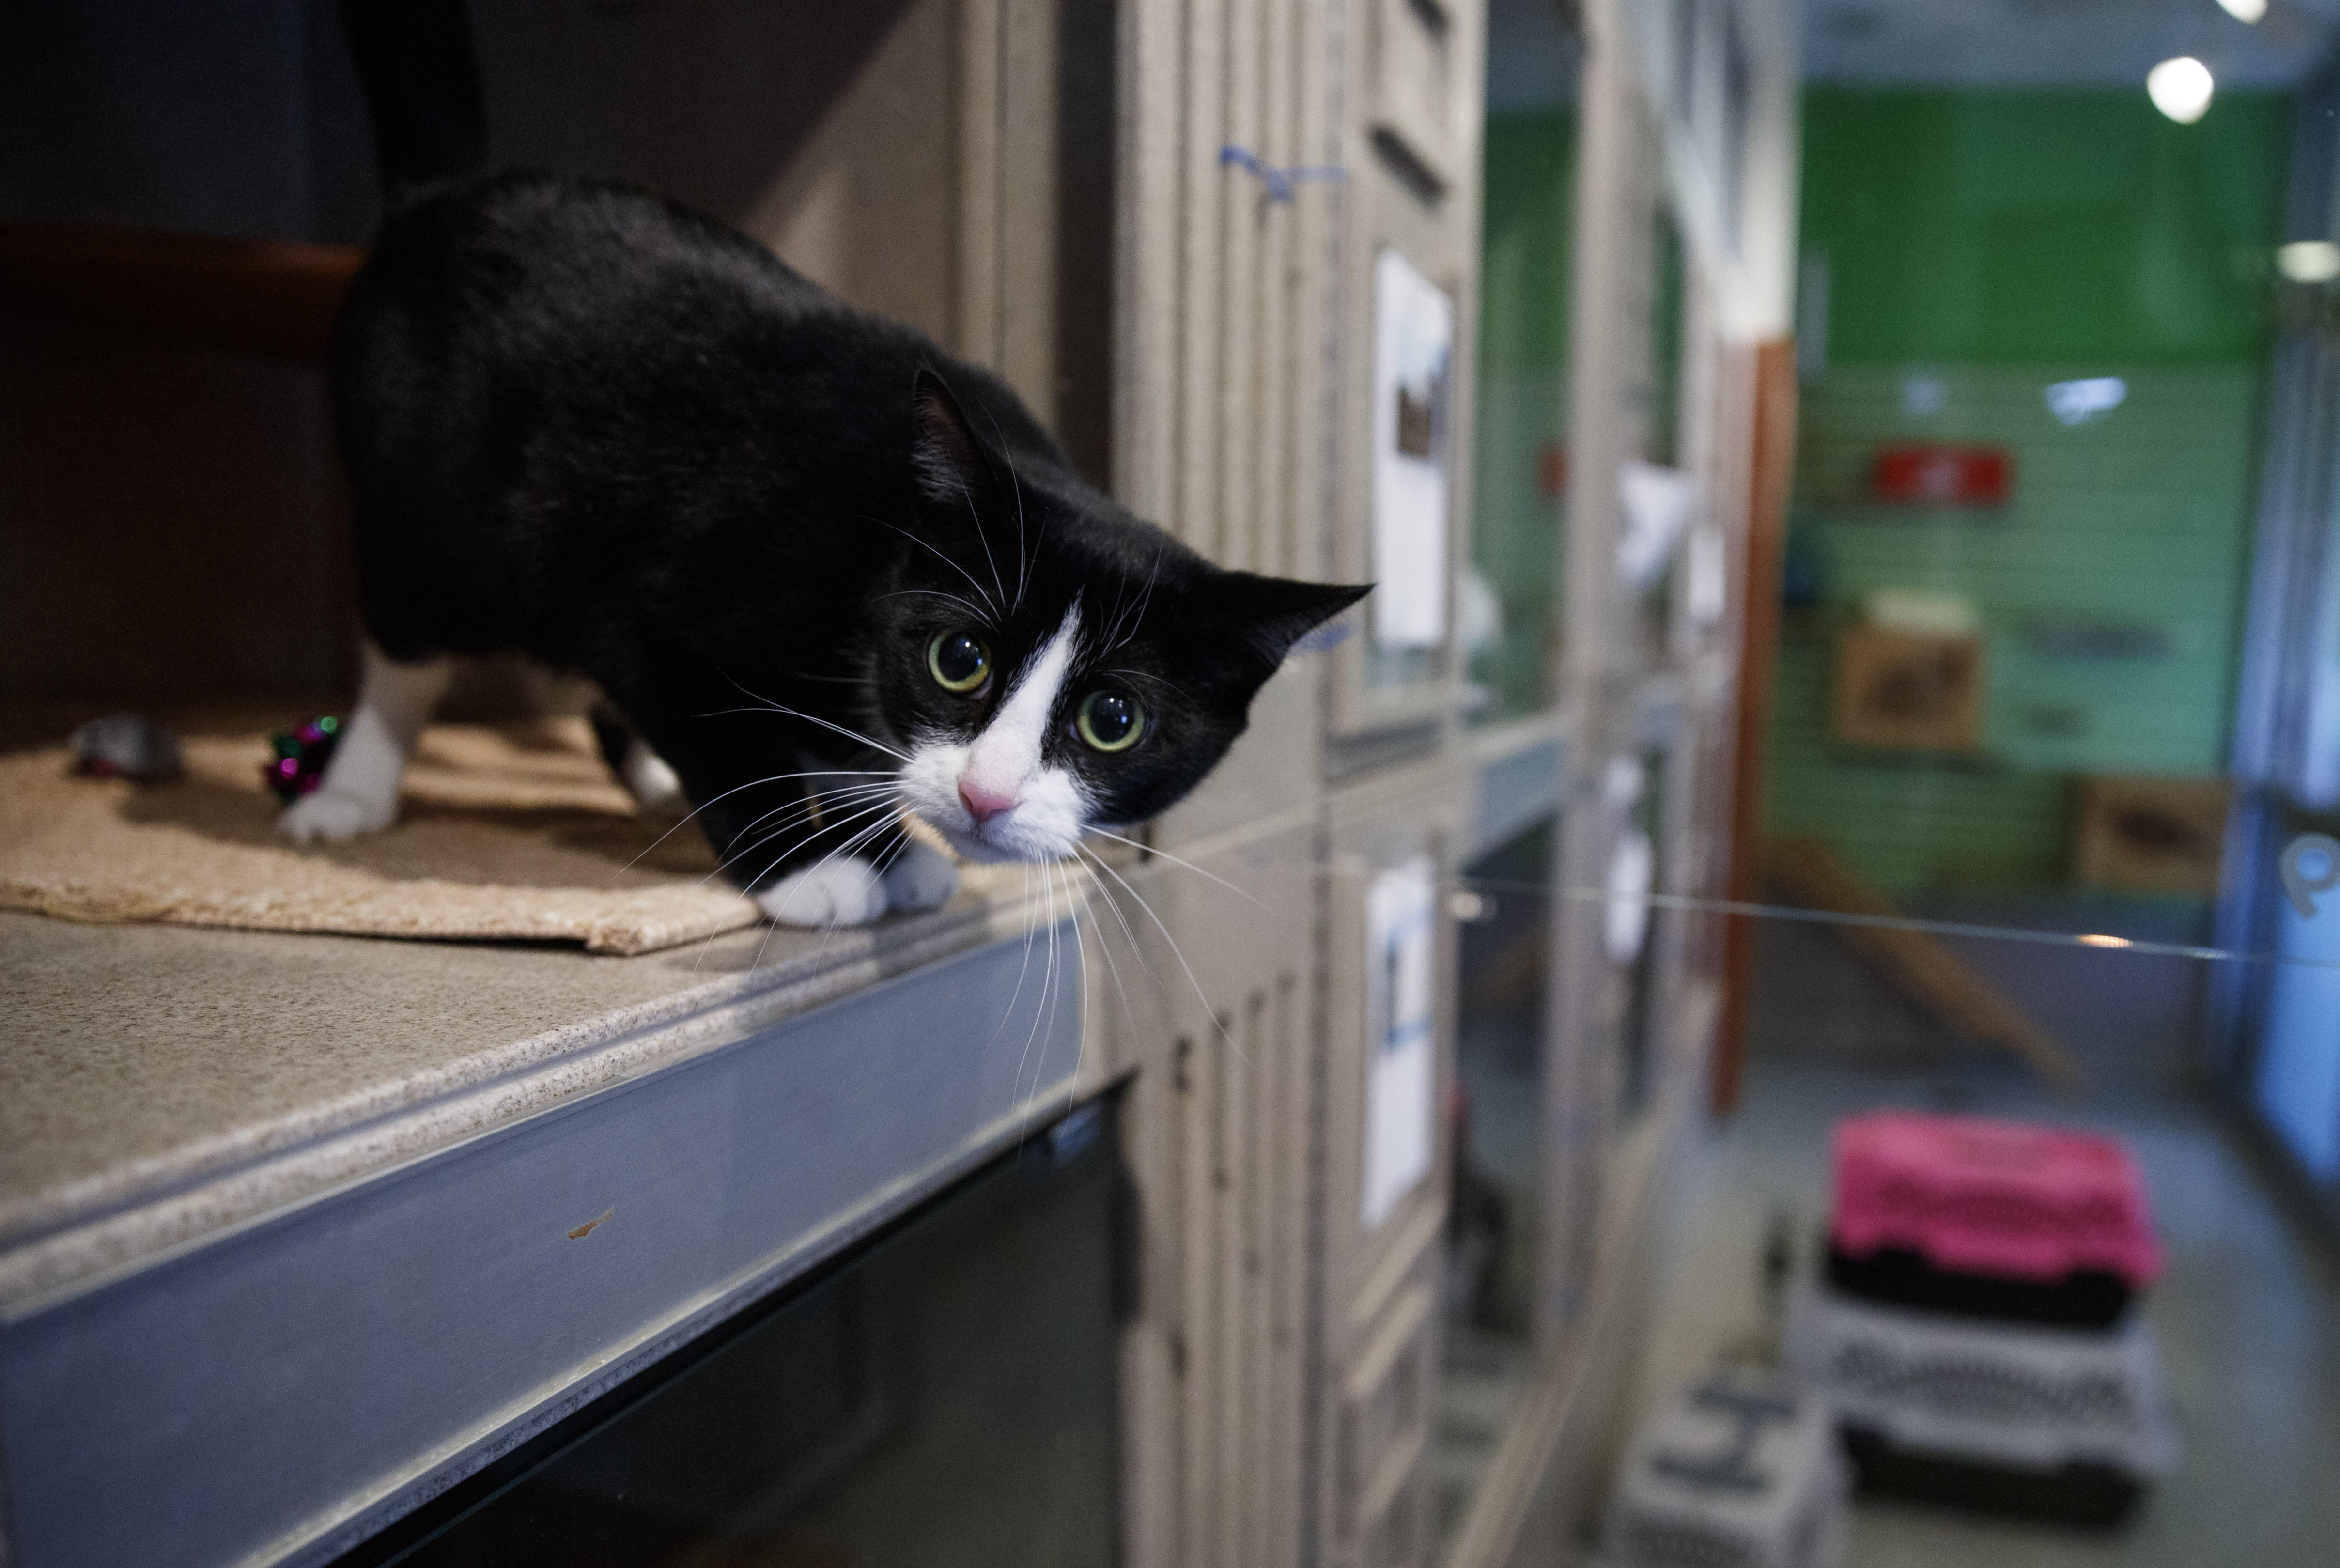 Miss Kitty, a four-year old short-haired cat, looks out from her new enclosure at Humane Rescue Alliance in Washington, Tuesday, Sept. 11, 2018. Miss Kitty is one of 26 cats and dogs that arrived in Washington from Norfolk Animal Care and Control of Norfolk, Va., in advance of Hurricane Florence. People aren't the only ones evacuating to get out of the path of Hurricane Florence. The dogs and cats will all be available for adoption. (AP Photo/Carolyn Kaster)